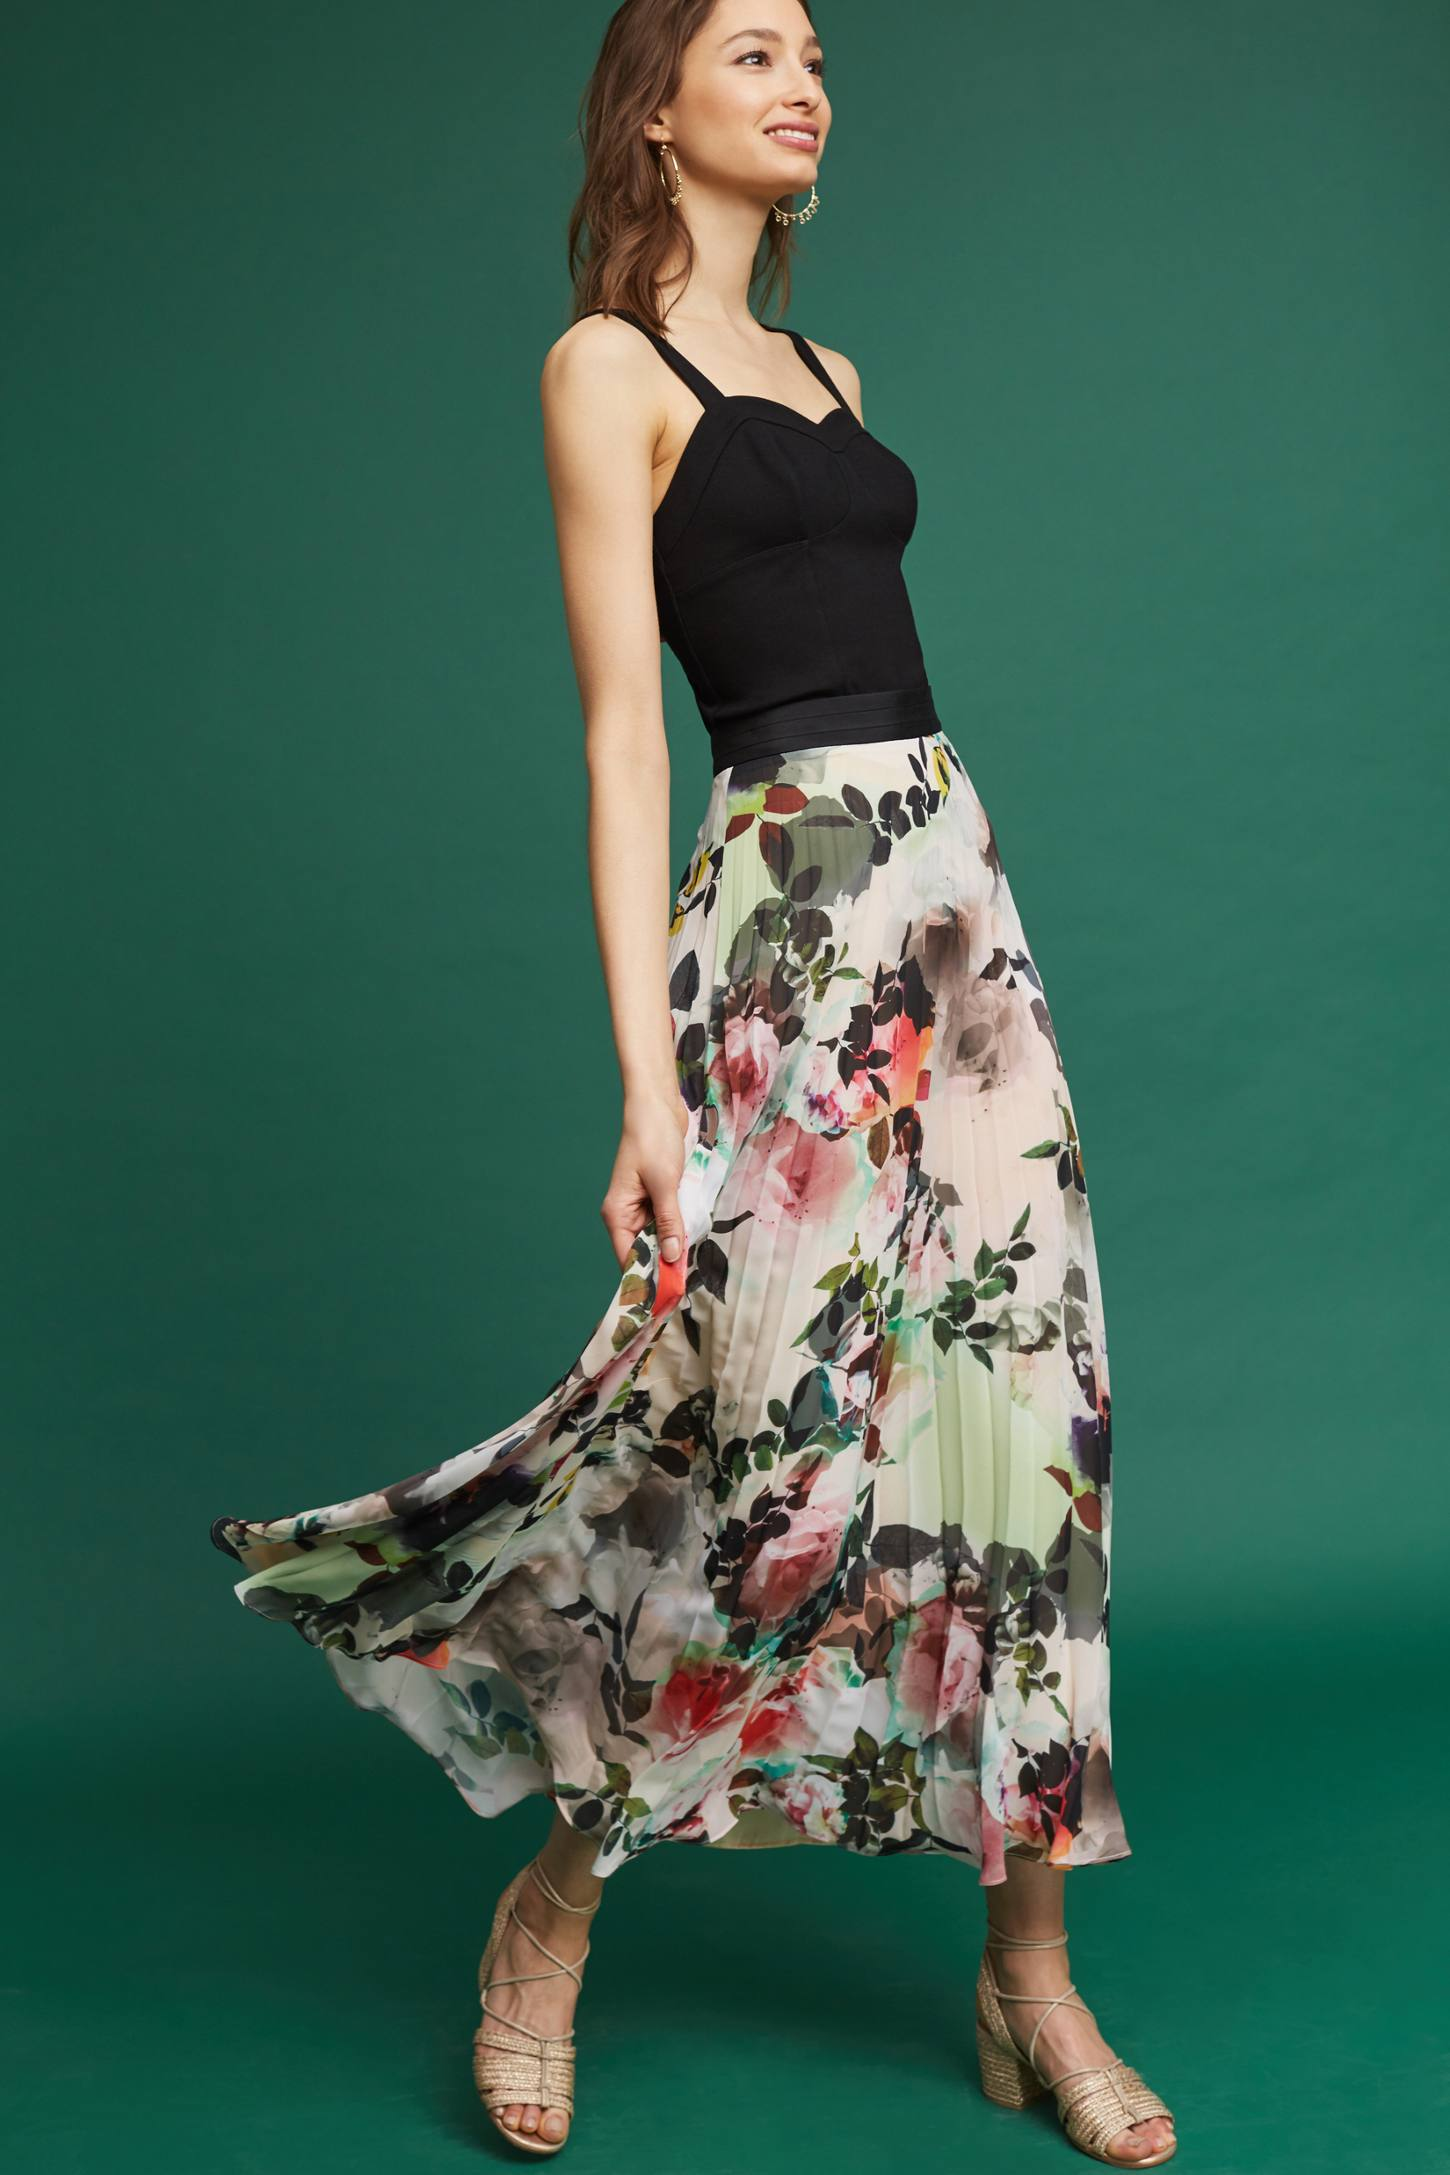 Slide View: 2: Pleated Floral Skirt